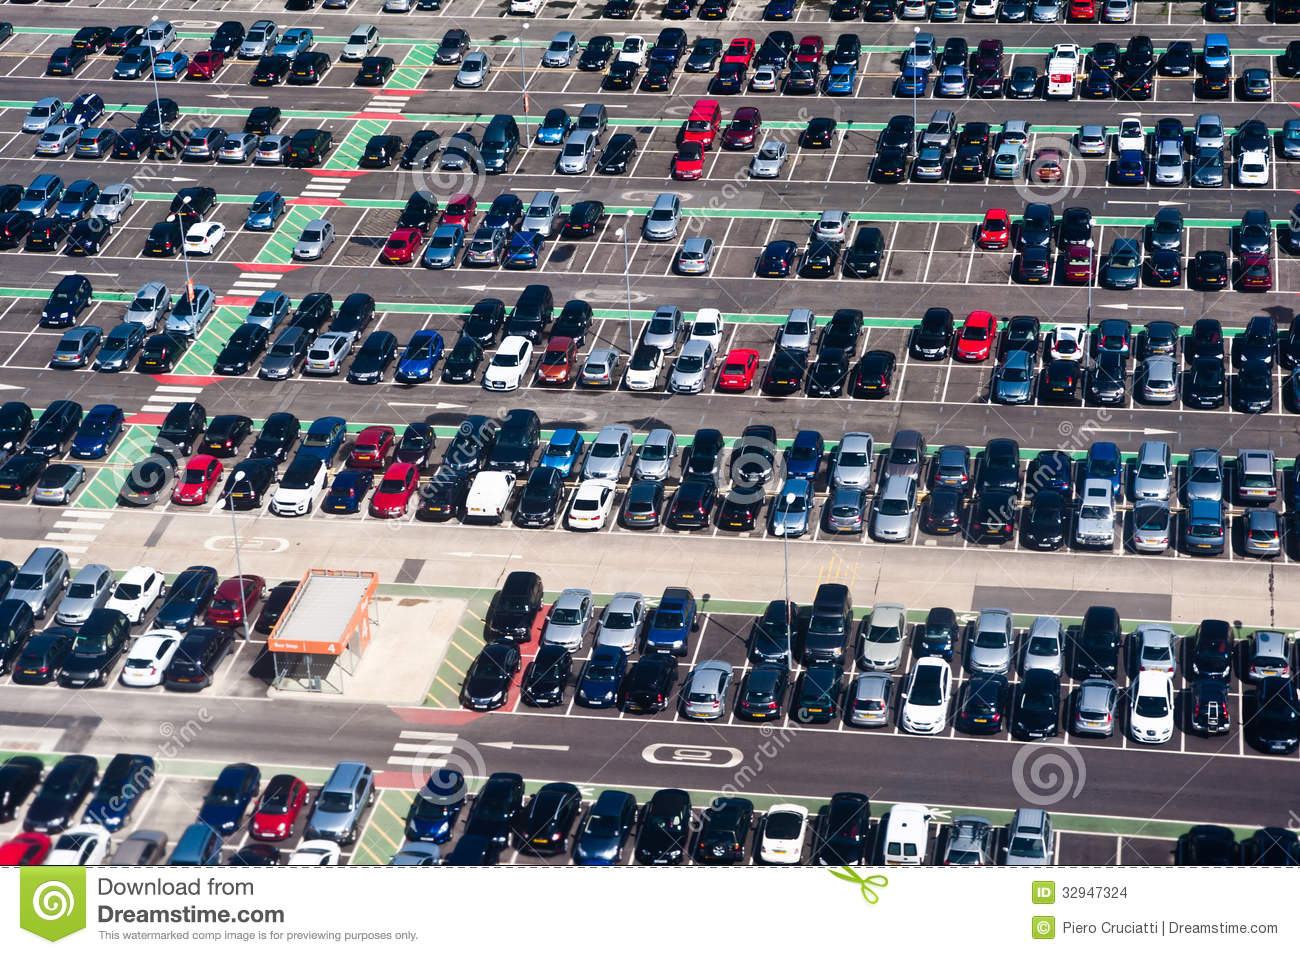 aerial view of car crowded parking lot stock images. Black Bedroom Furniture Sets. Home Design Ideas